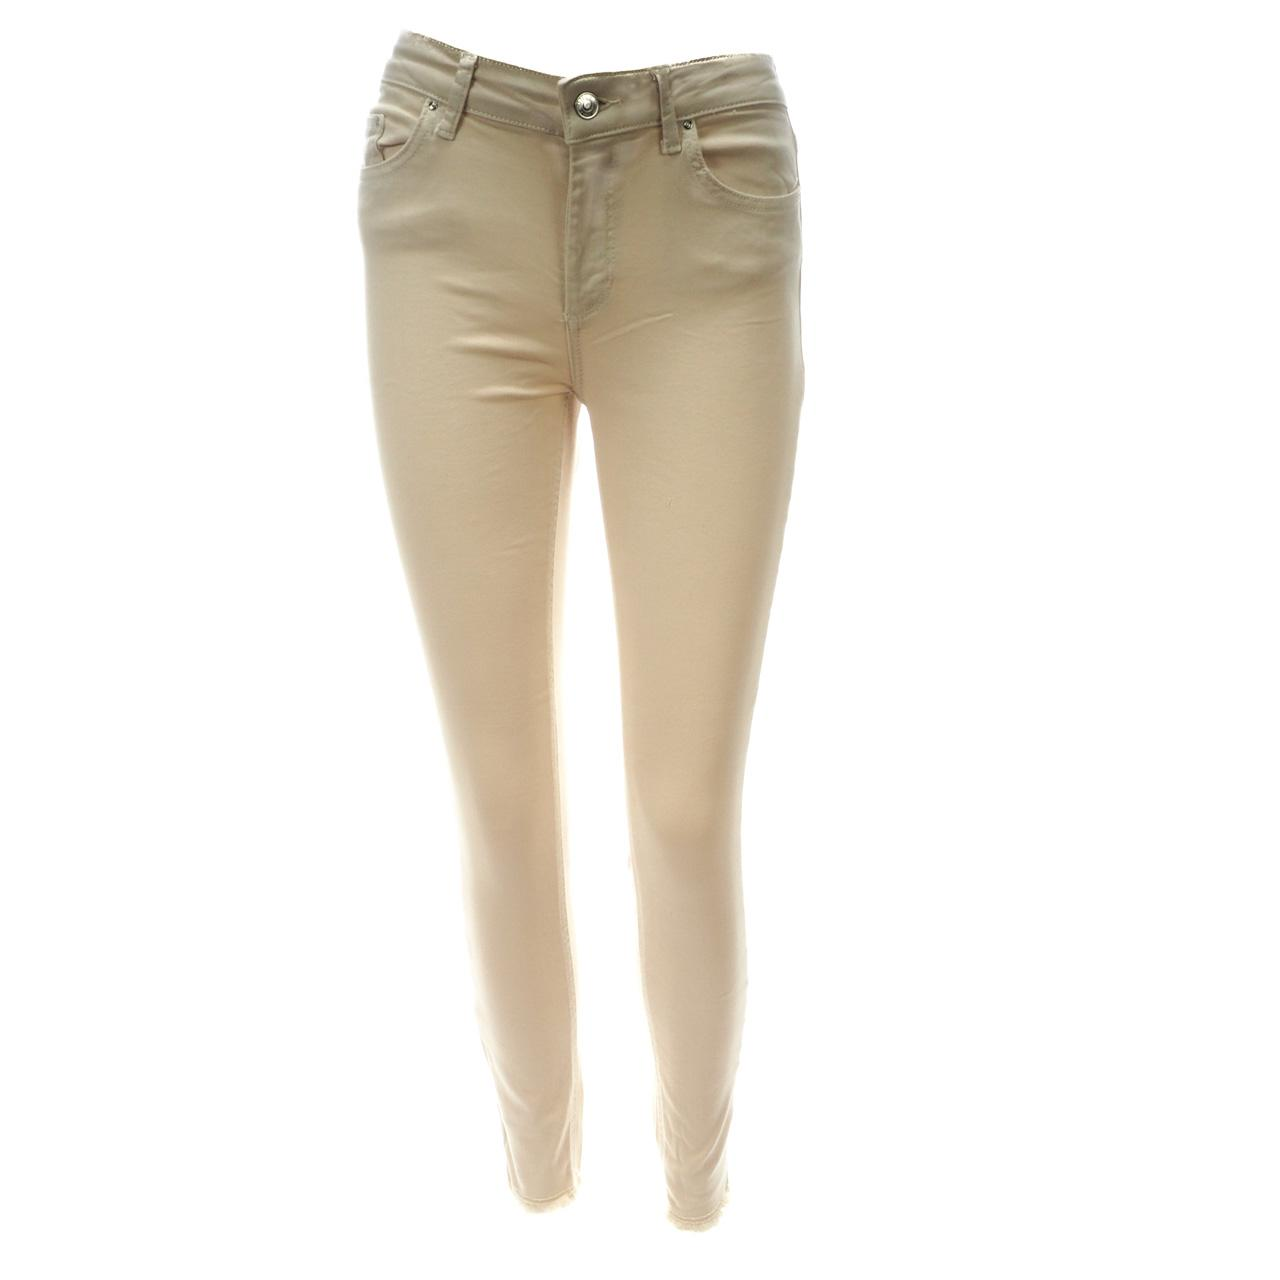 Trousers-Slim-Jeans-only-Blush-32-Egret-Jeans-L-Beige-18666-New